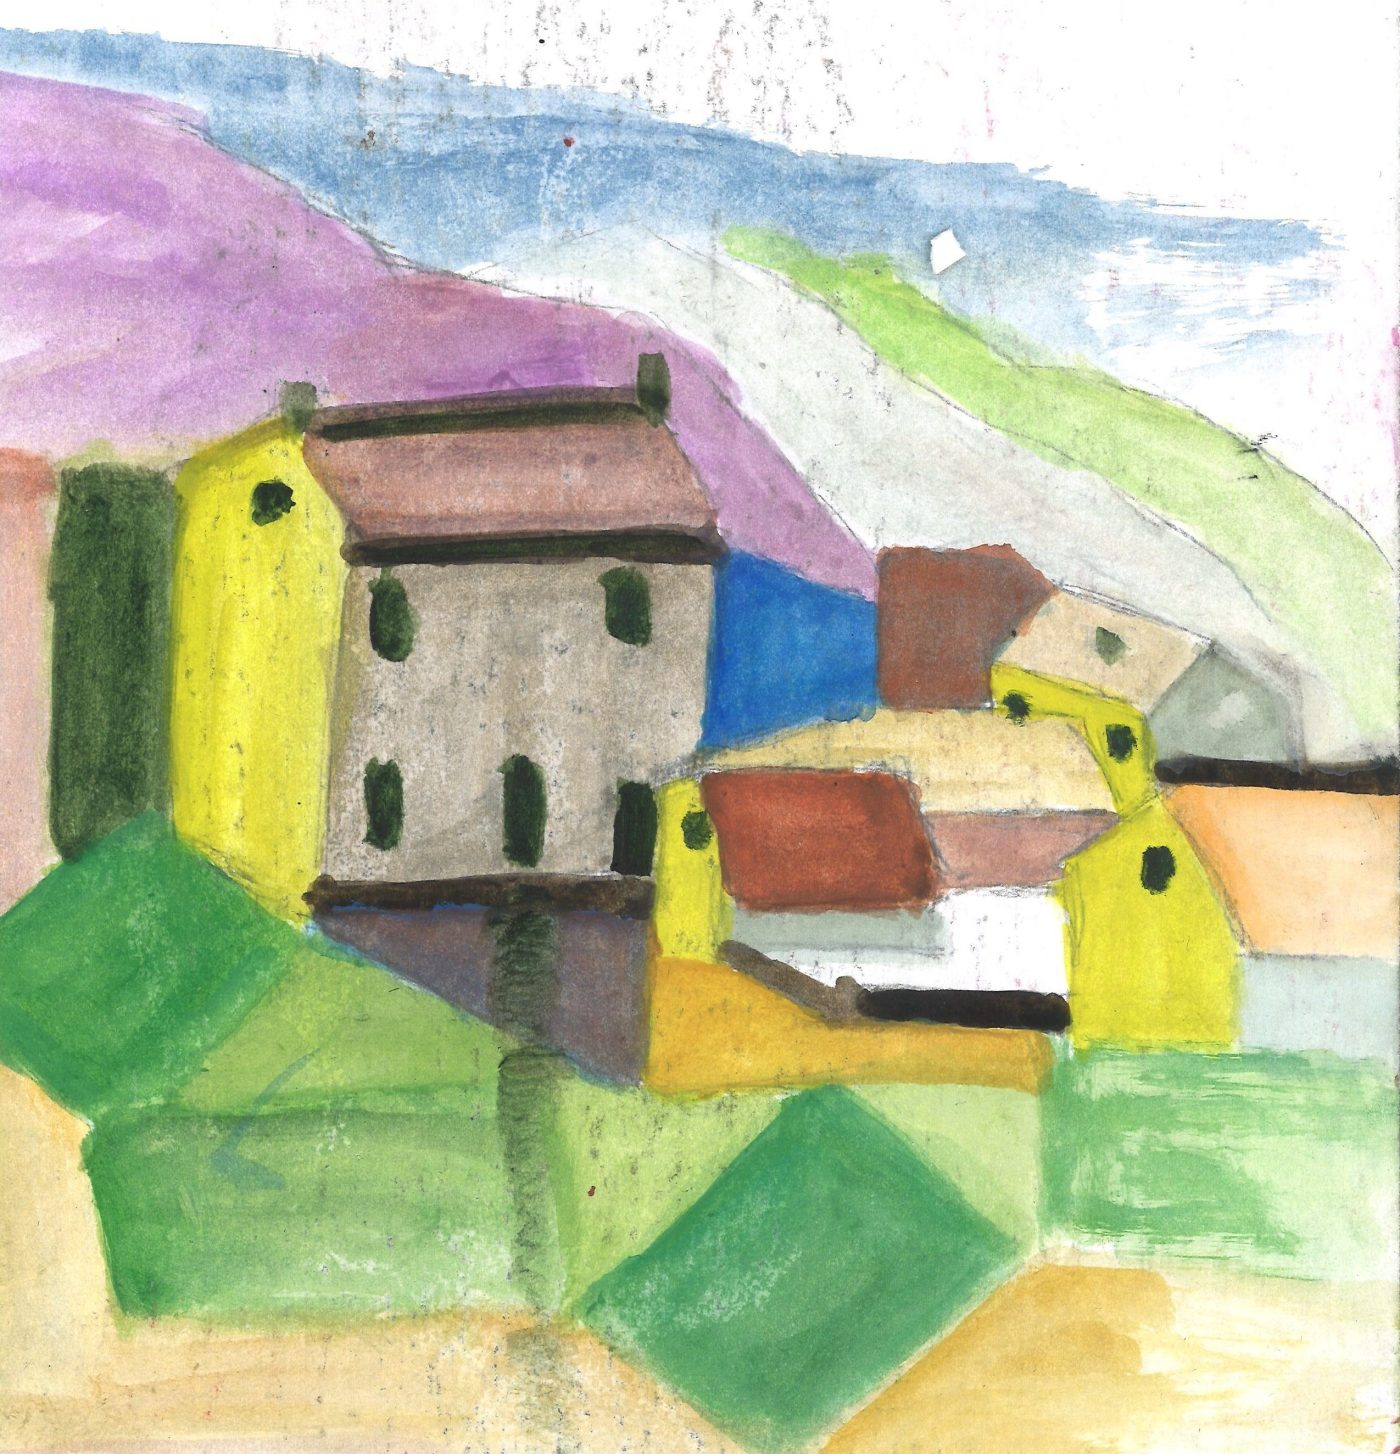 Chez Titi, watercolor on cardboard, after A Fassotte photo and Klee watercolor, , by William Eaton, March 2020